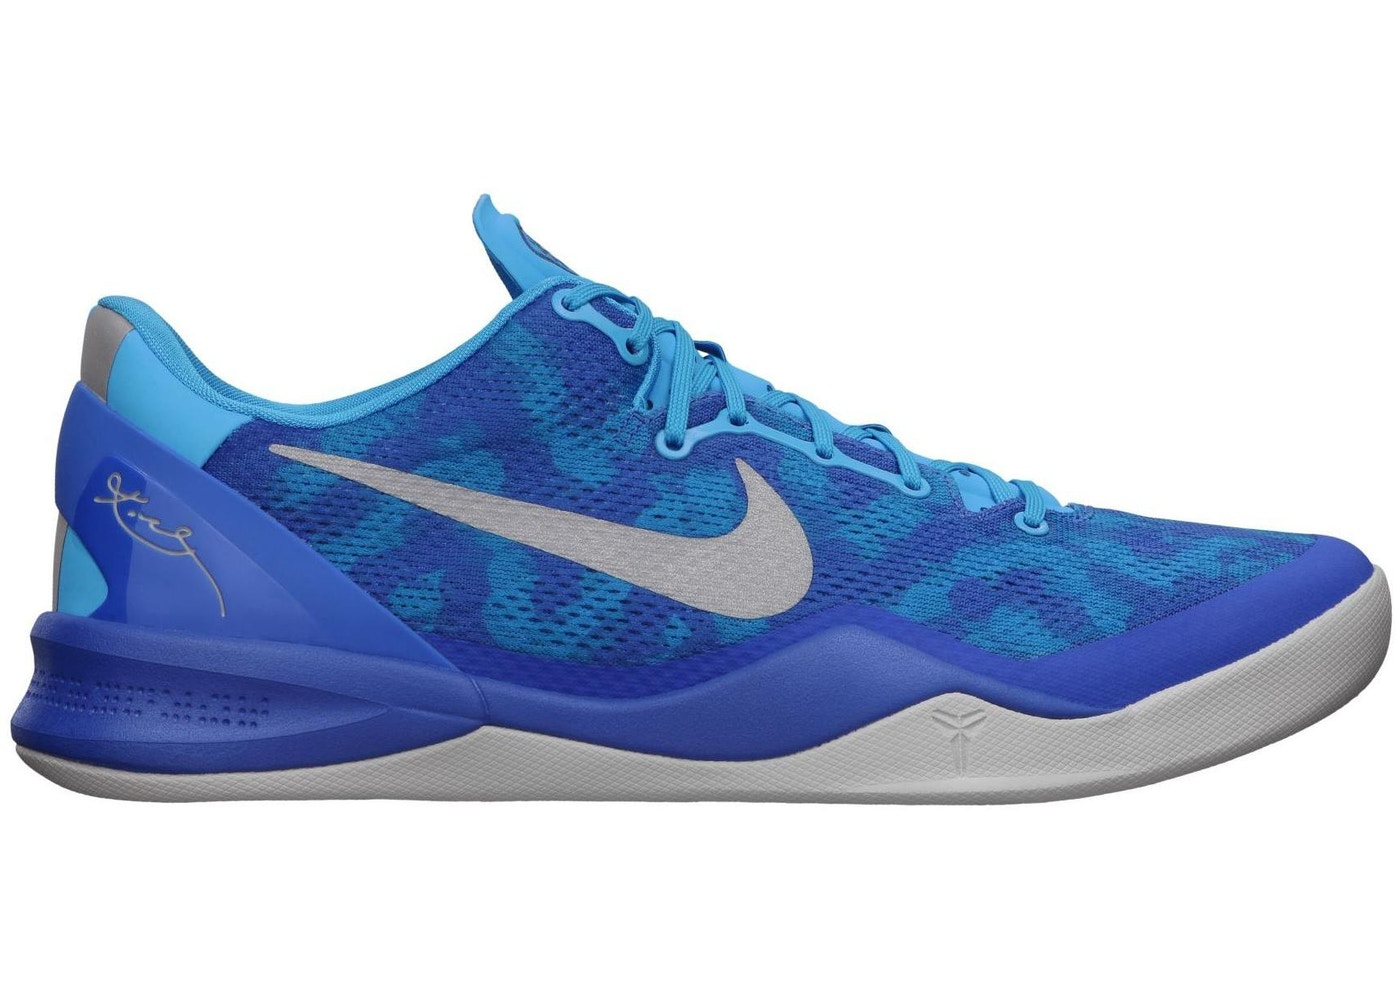 detailed look a8a64 29804 Kobe 8 Blue Glow - 555035-400